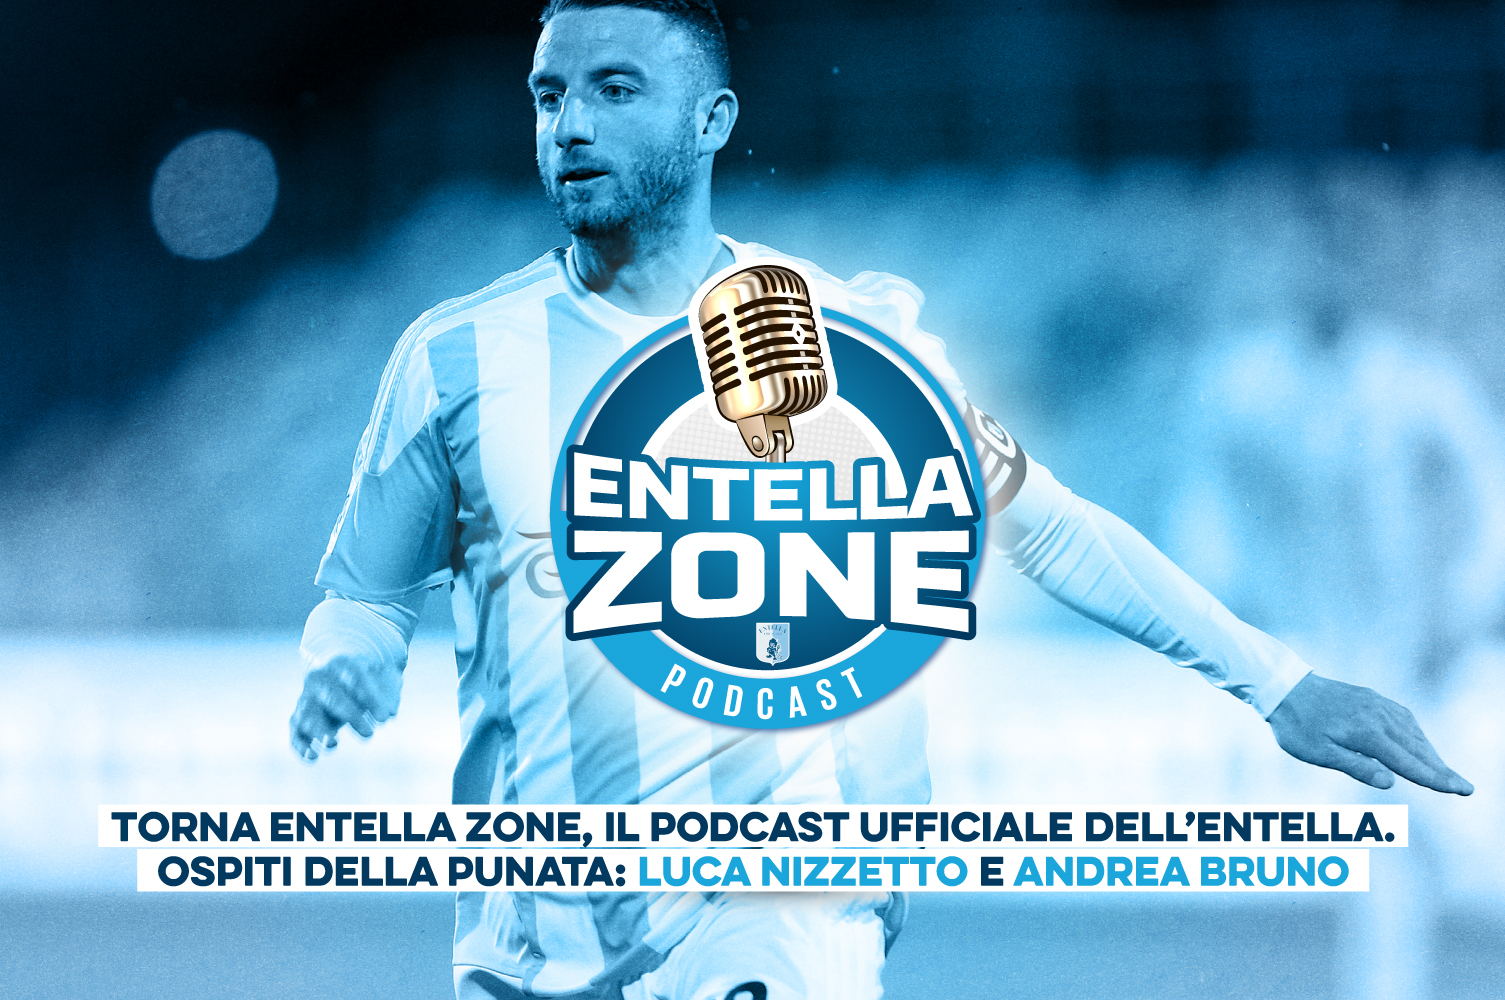 ENTELLA ZONE